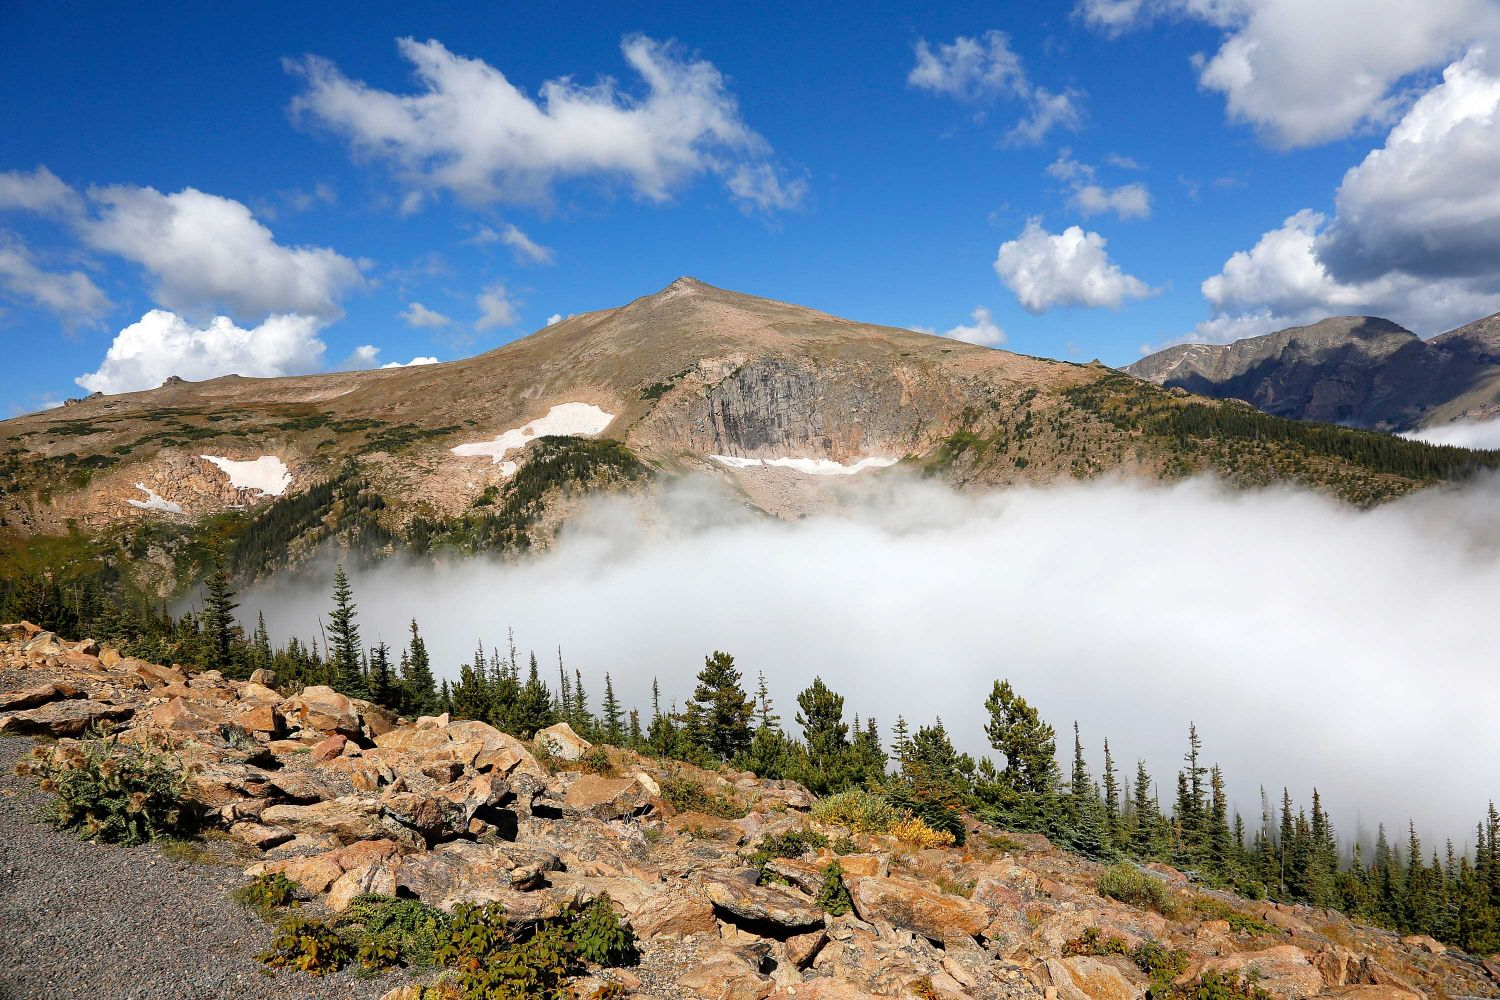 Sundance Mt from Trail Ridge Road taken from above the clouds